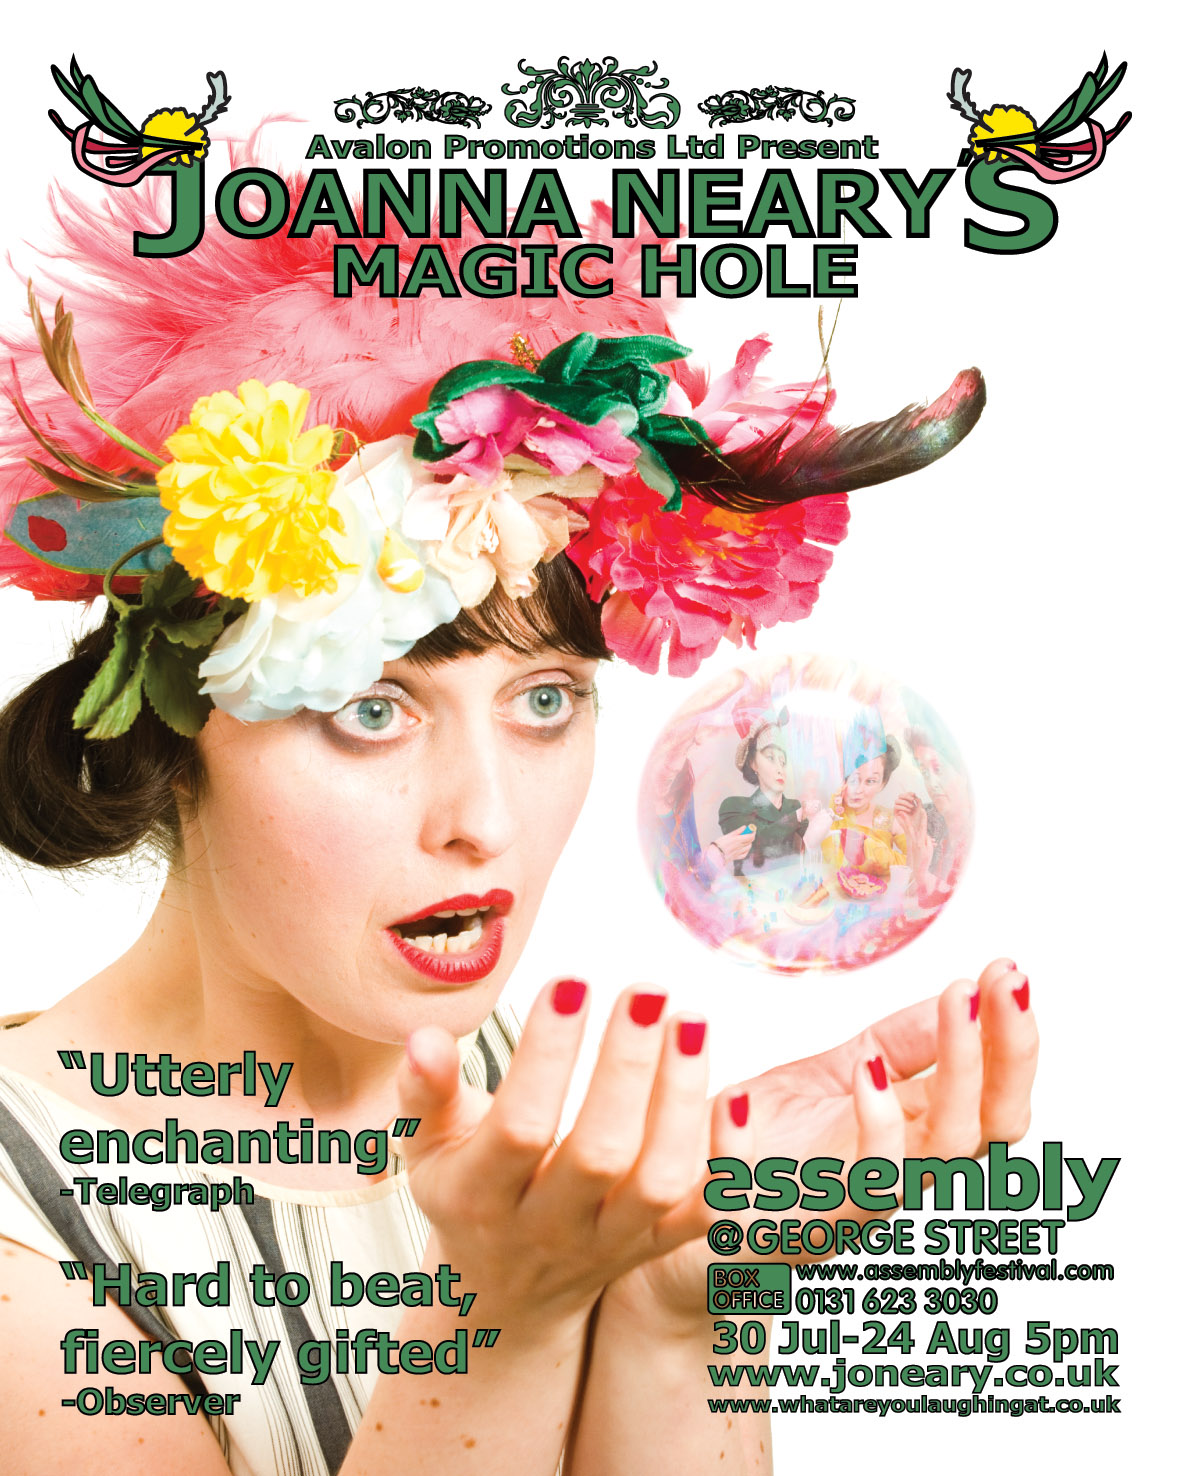 Joanna Neary's Magic Hole